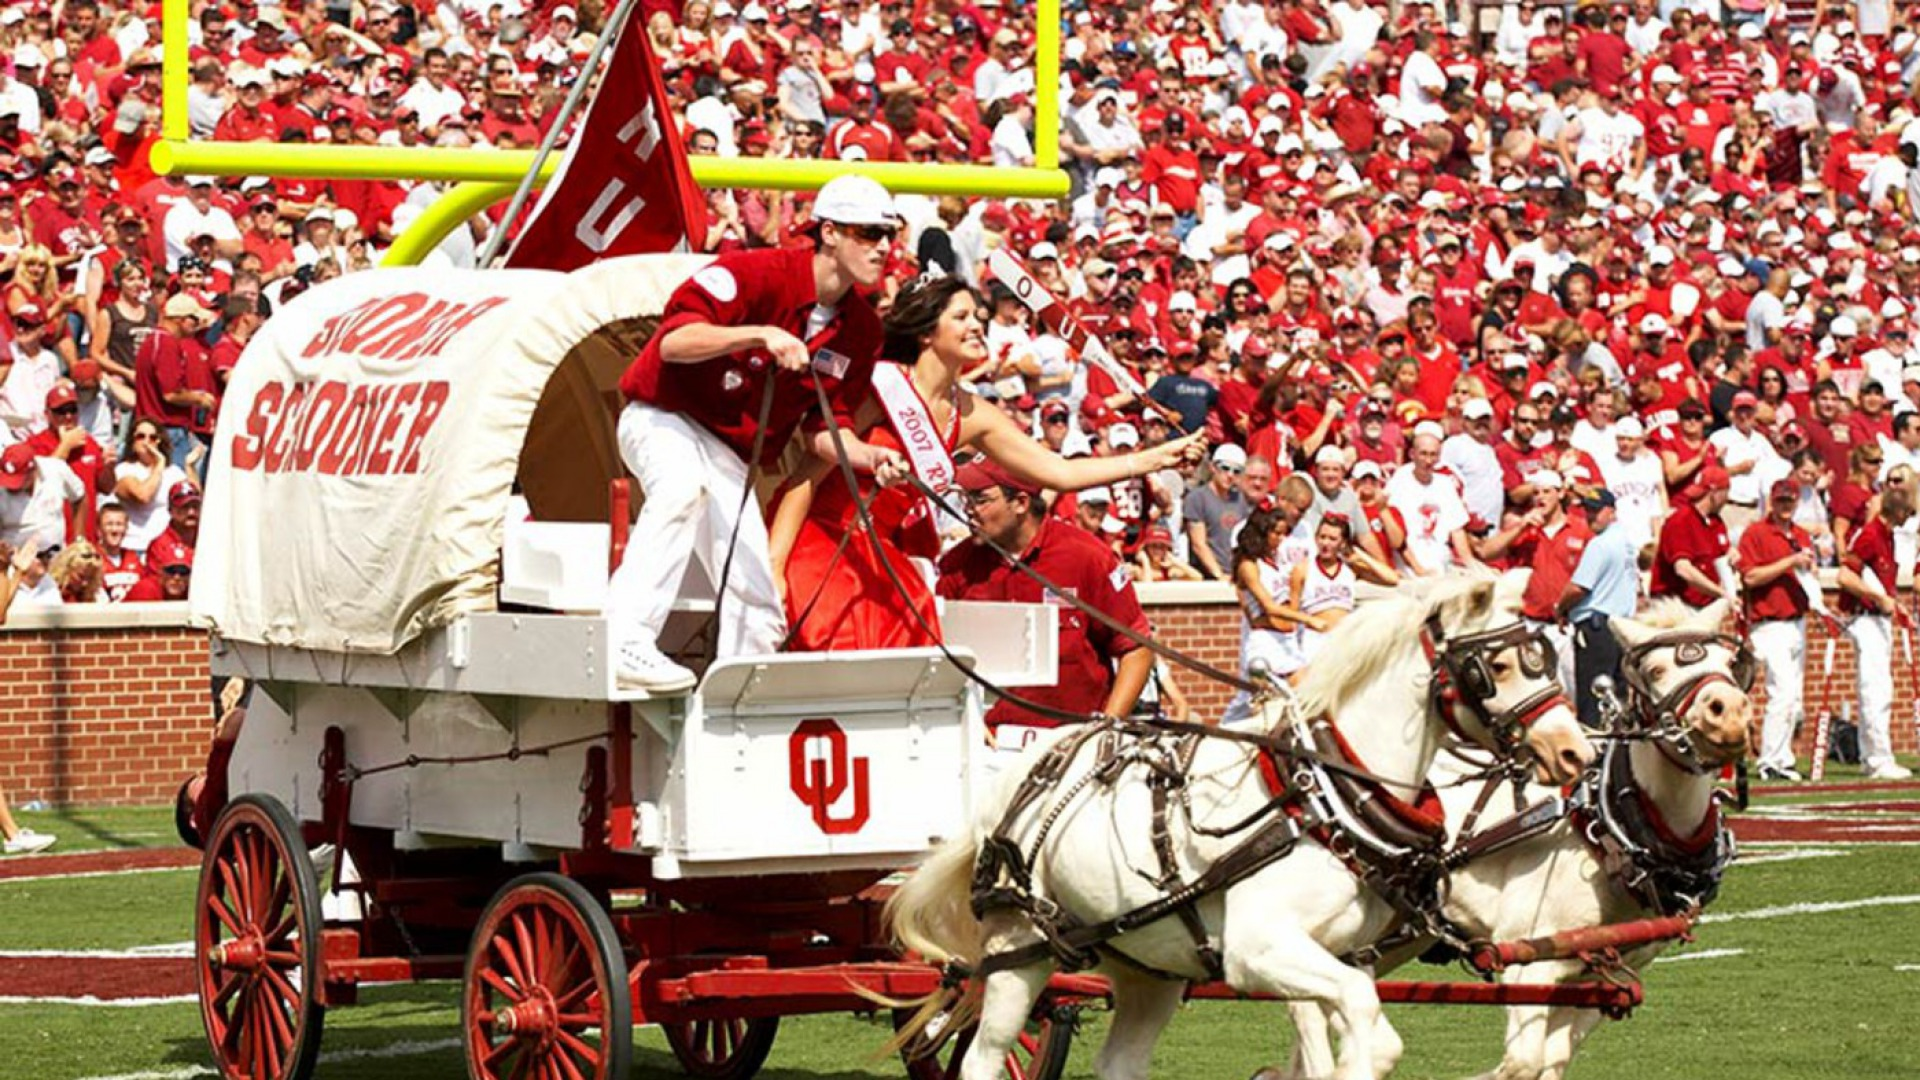 Oklahoma Sooners Wallpapers Browser Themes More 1920x1080